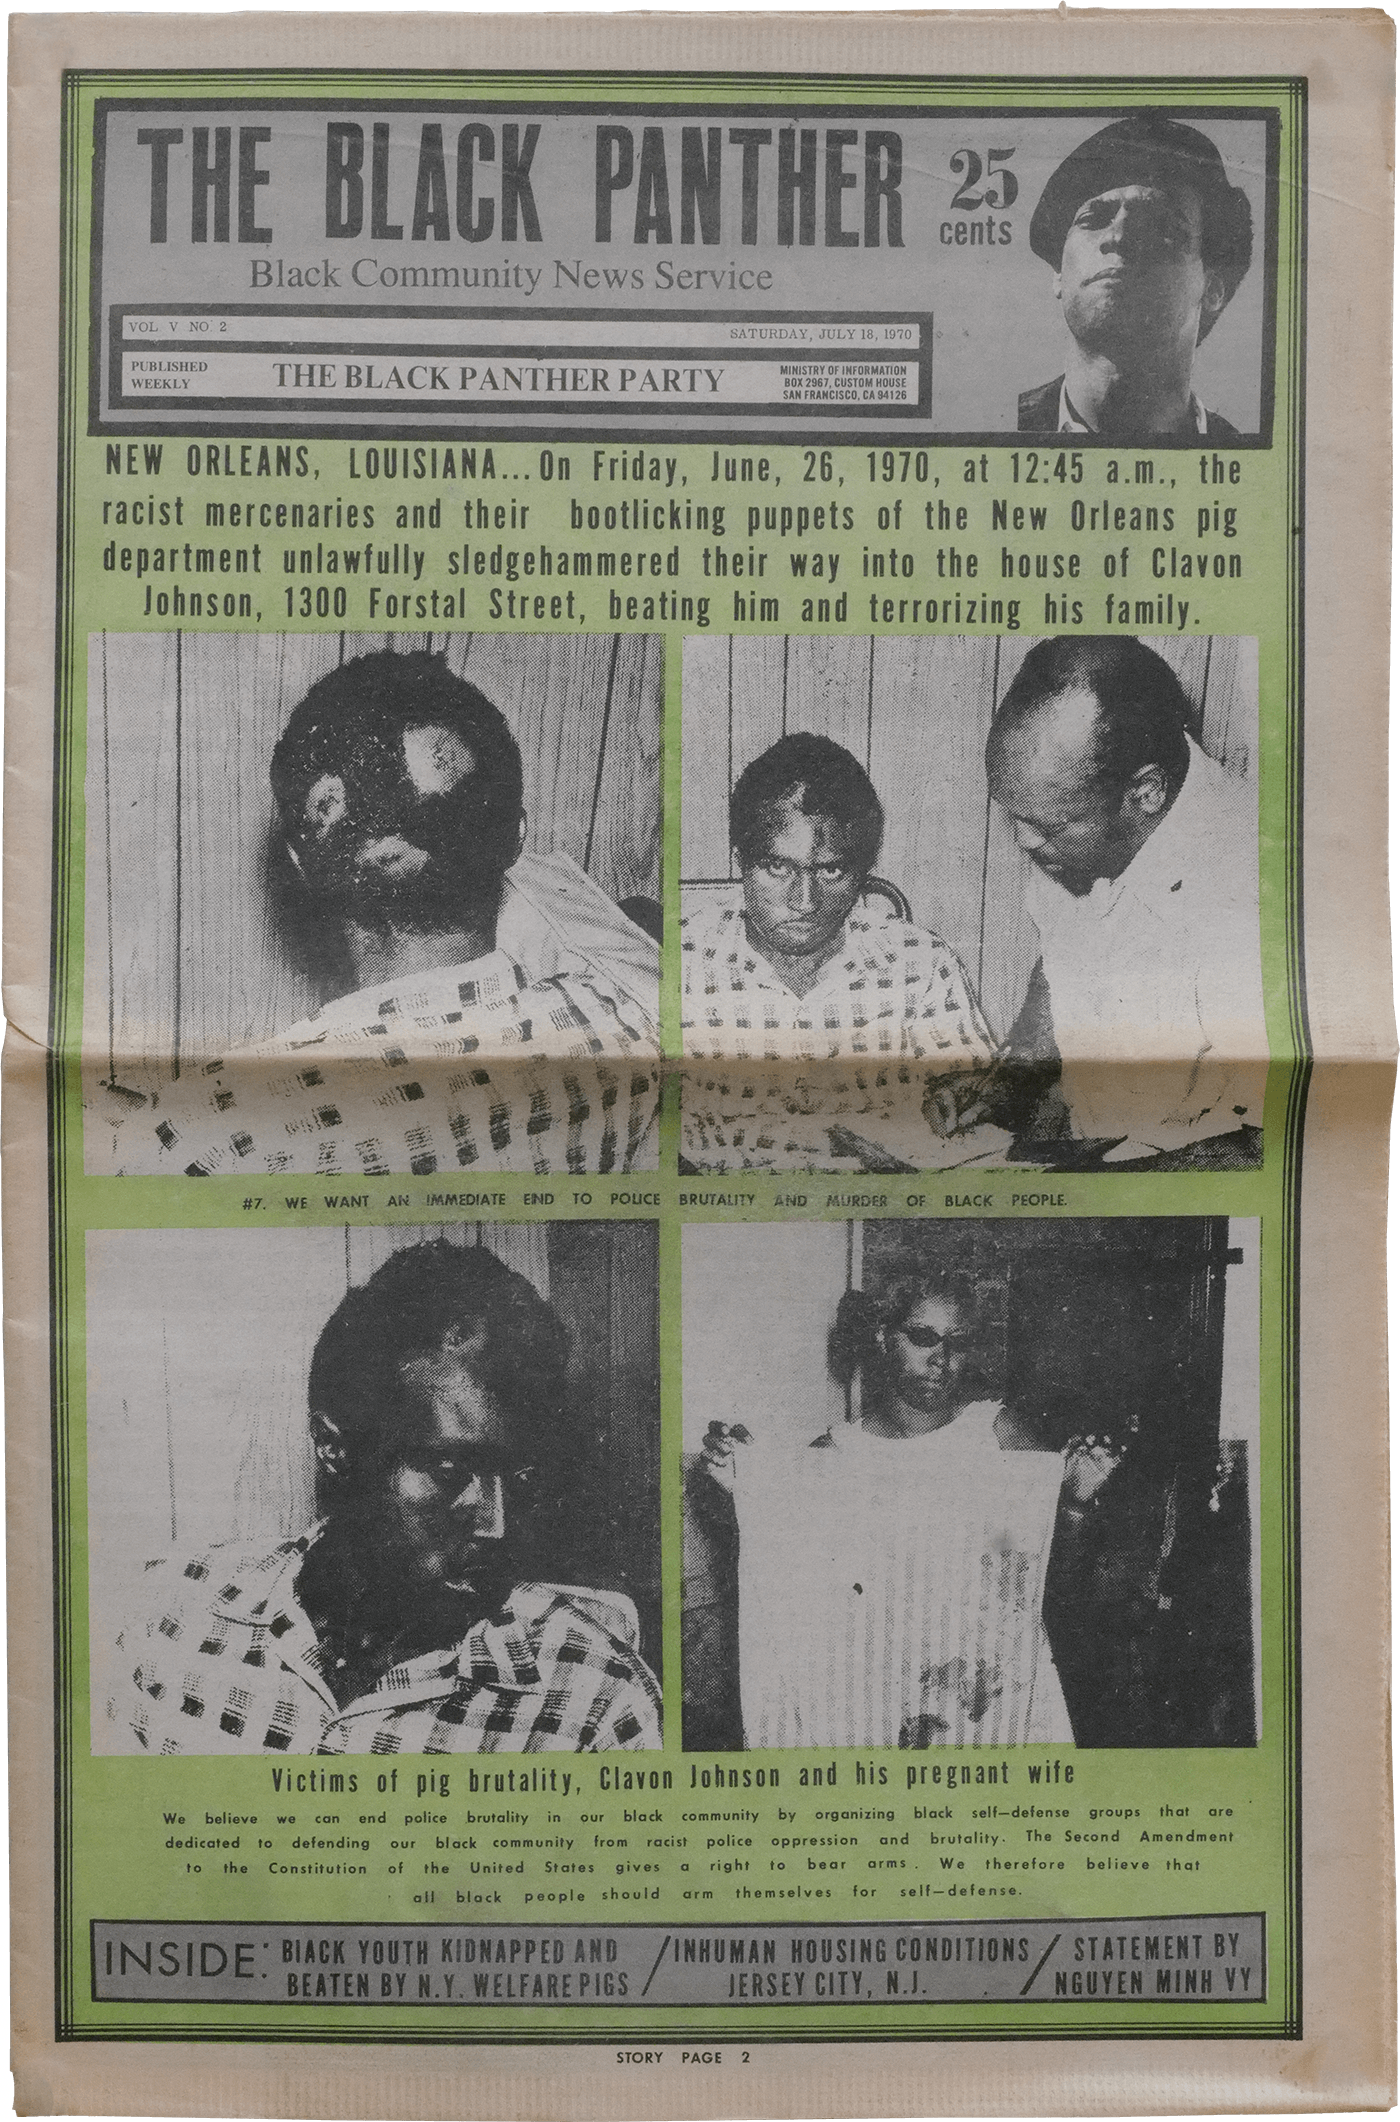 The Black Panther Newspaper (March 15, 1970)